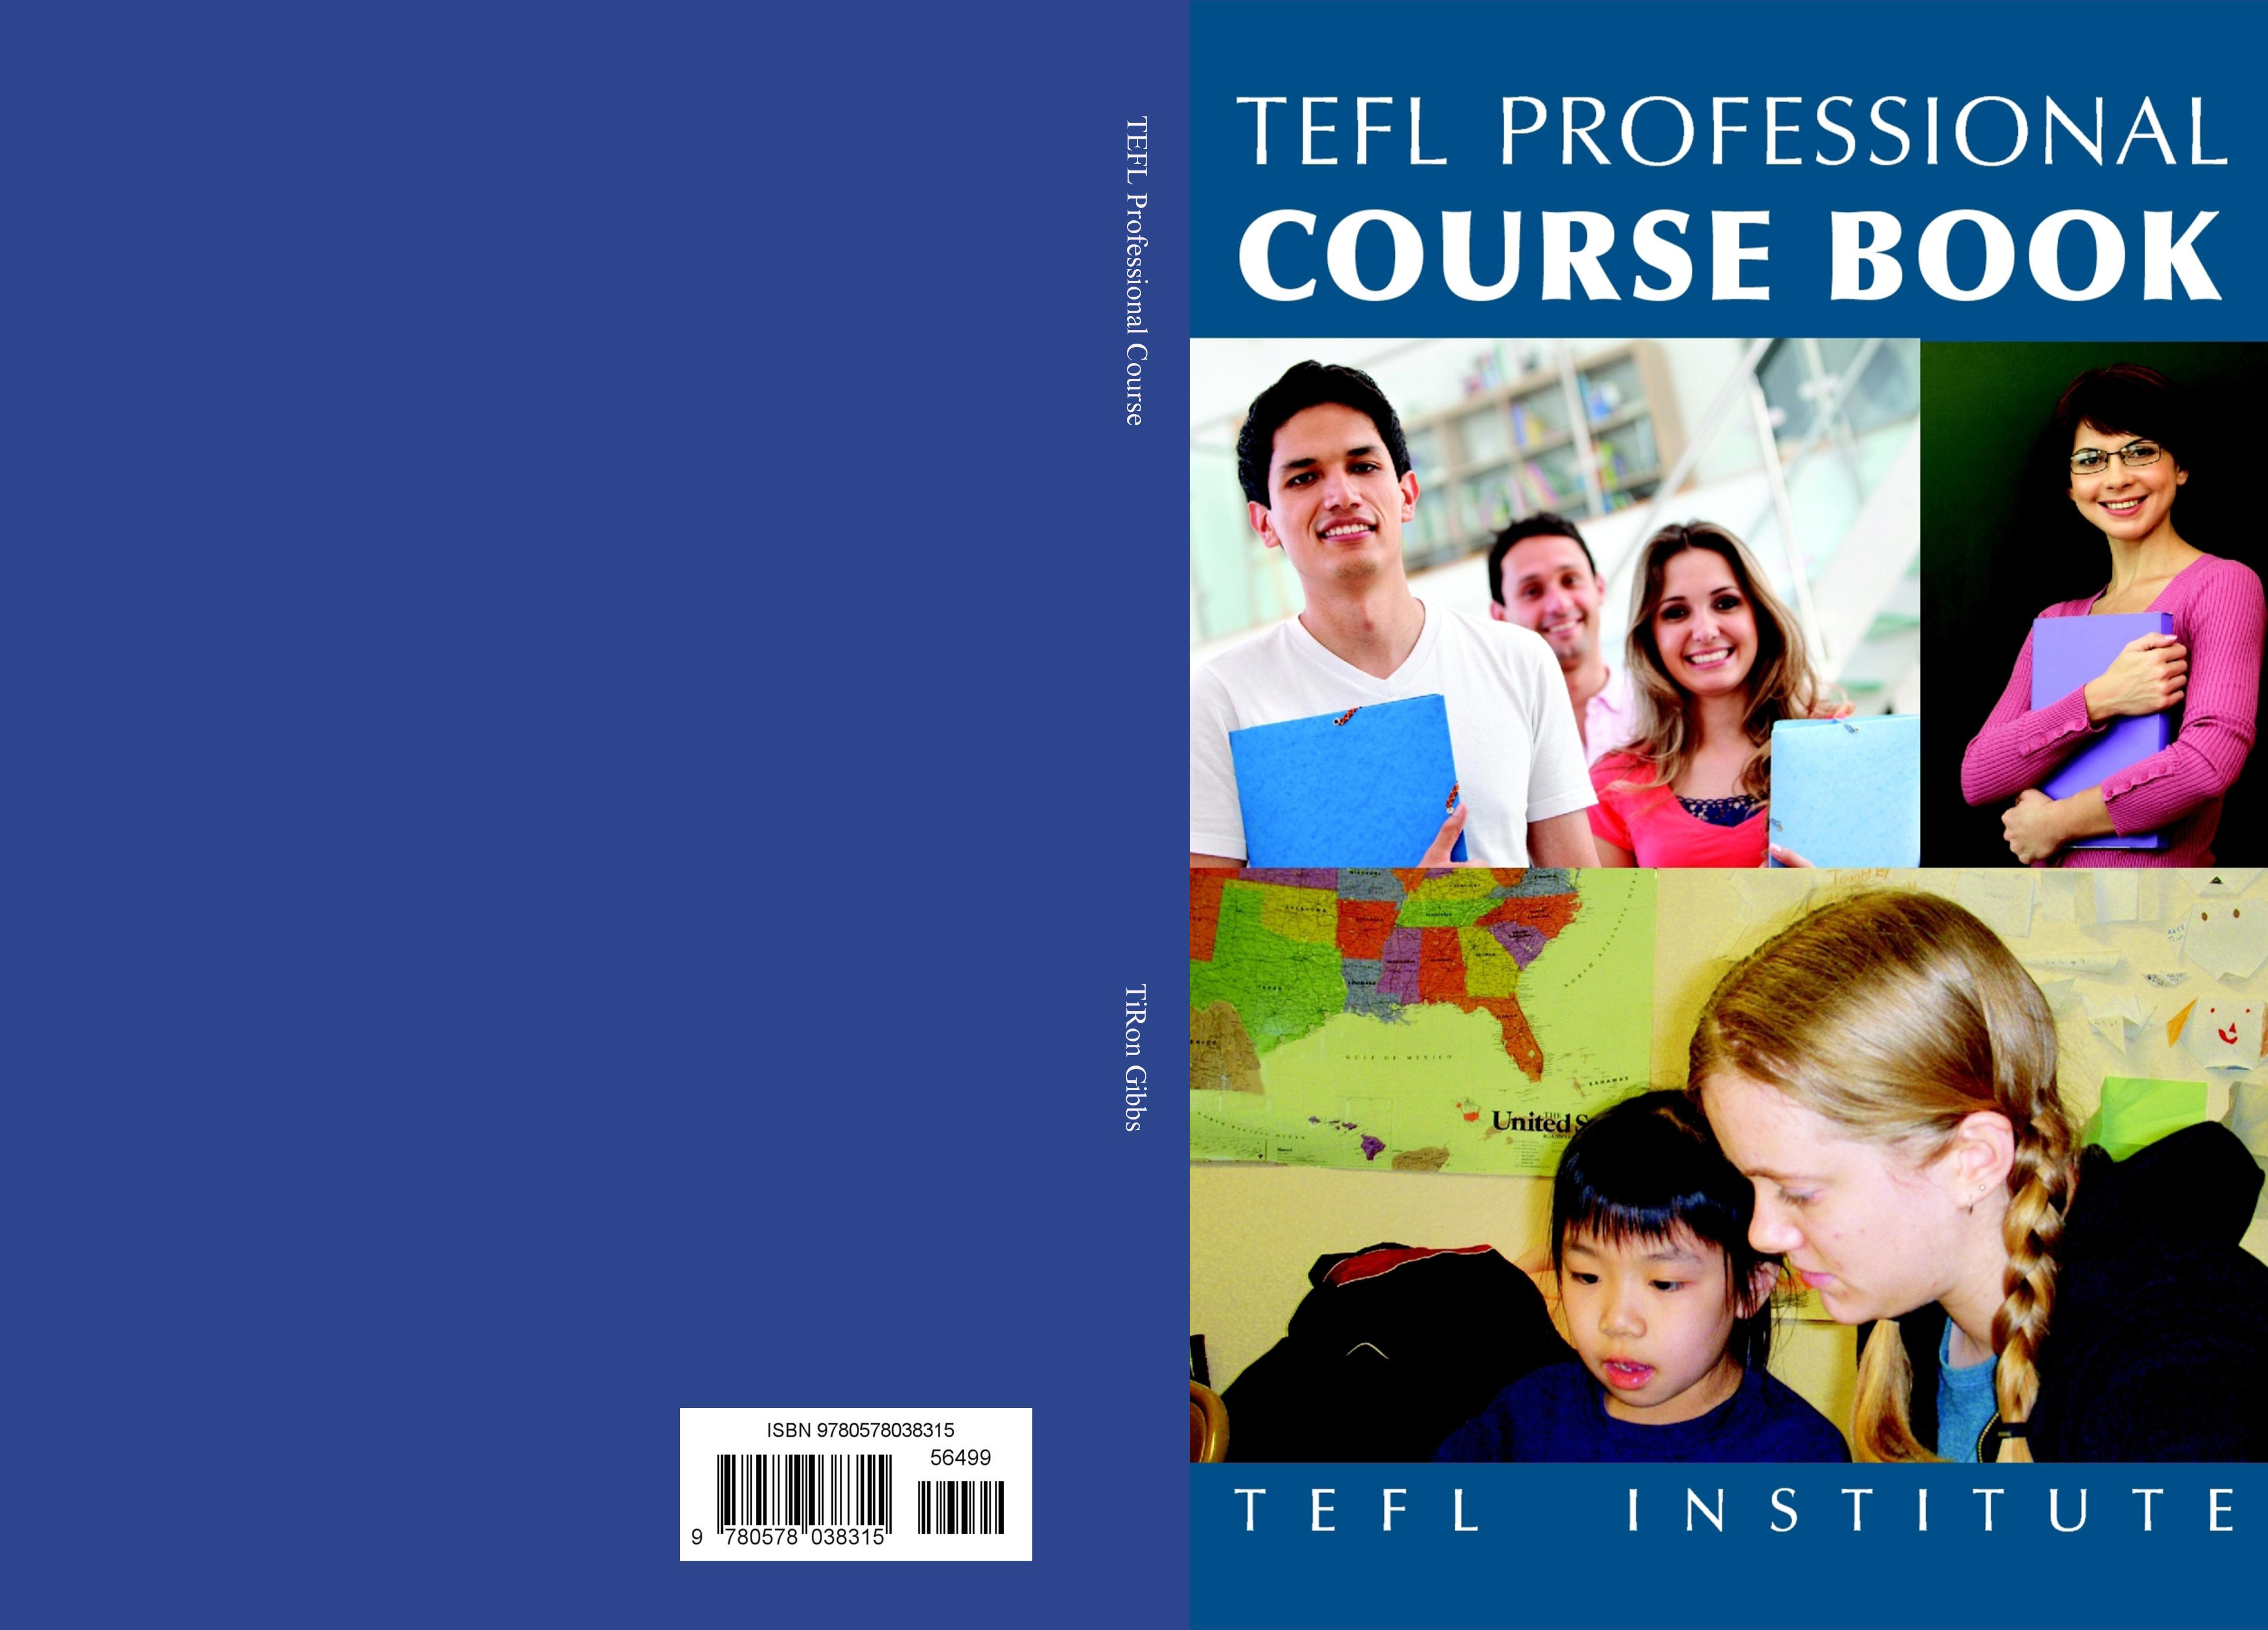 TEFL Professional Course cover image